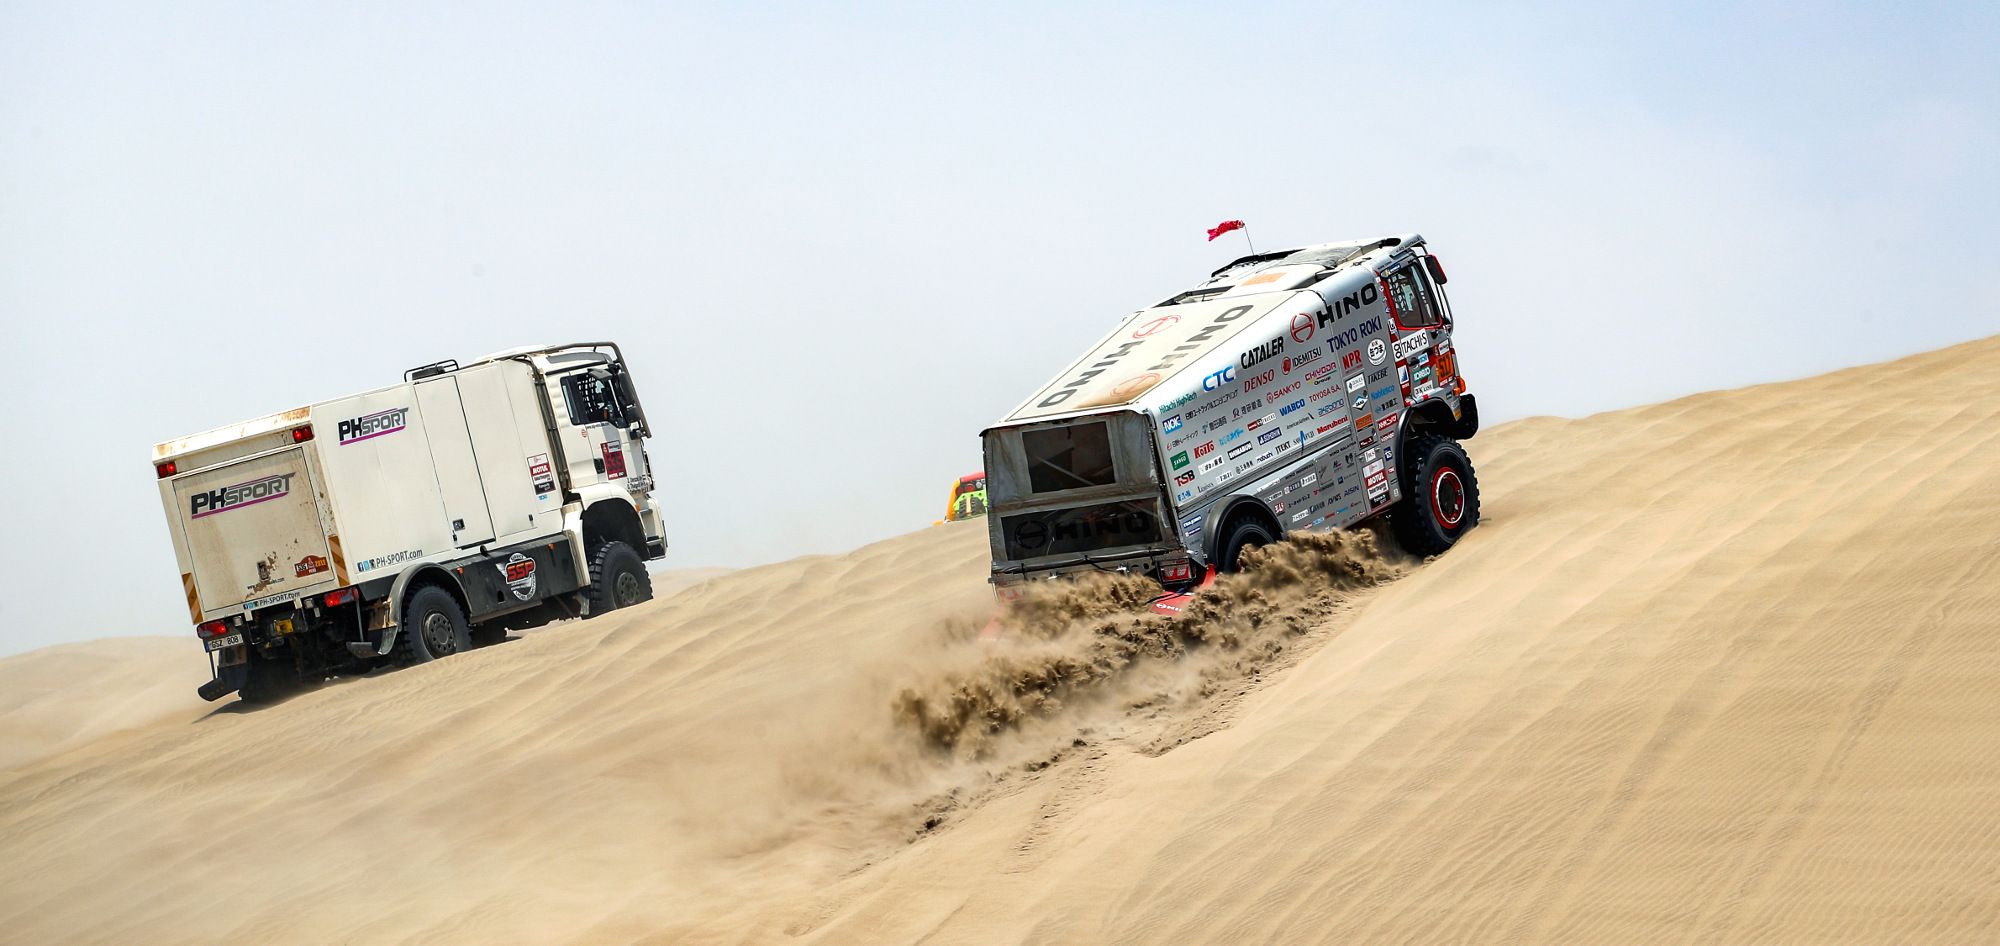 517 SUGAWARA Yoshimasa (jpn); SAKURAI Ahito (jpn); Hino; Hino Team Sugawara; Truck; Camion; action during the Dakar 2019; Stage 6; Arequipa - San Juan de Marcona; peru; on january 13 - Photo Frederic Le Floc'h / DPPI